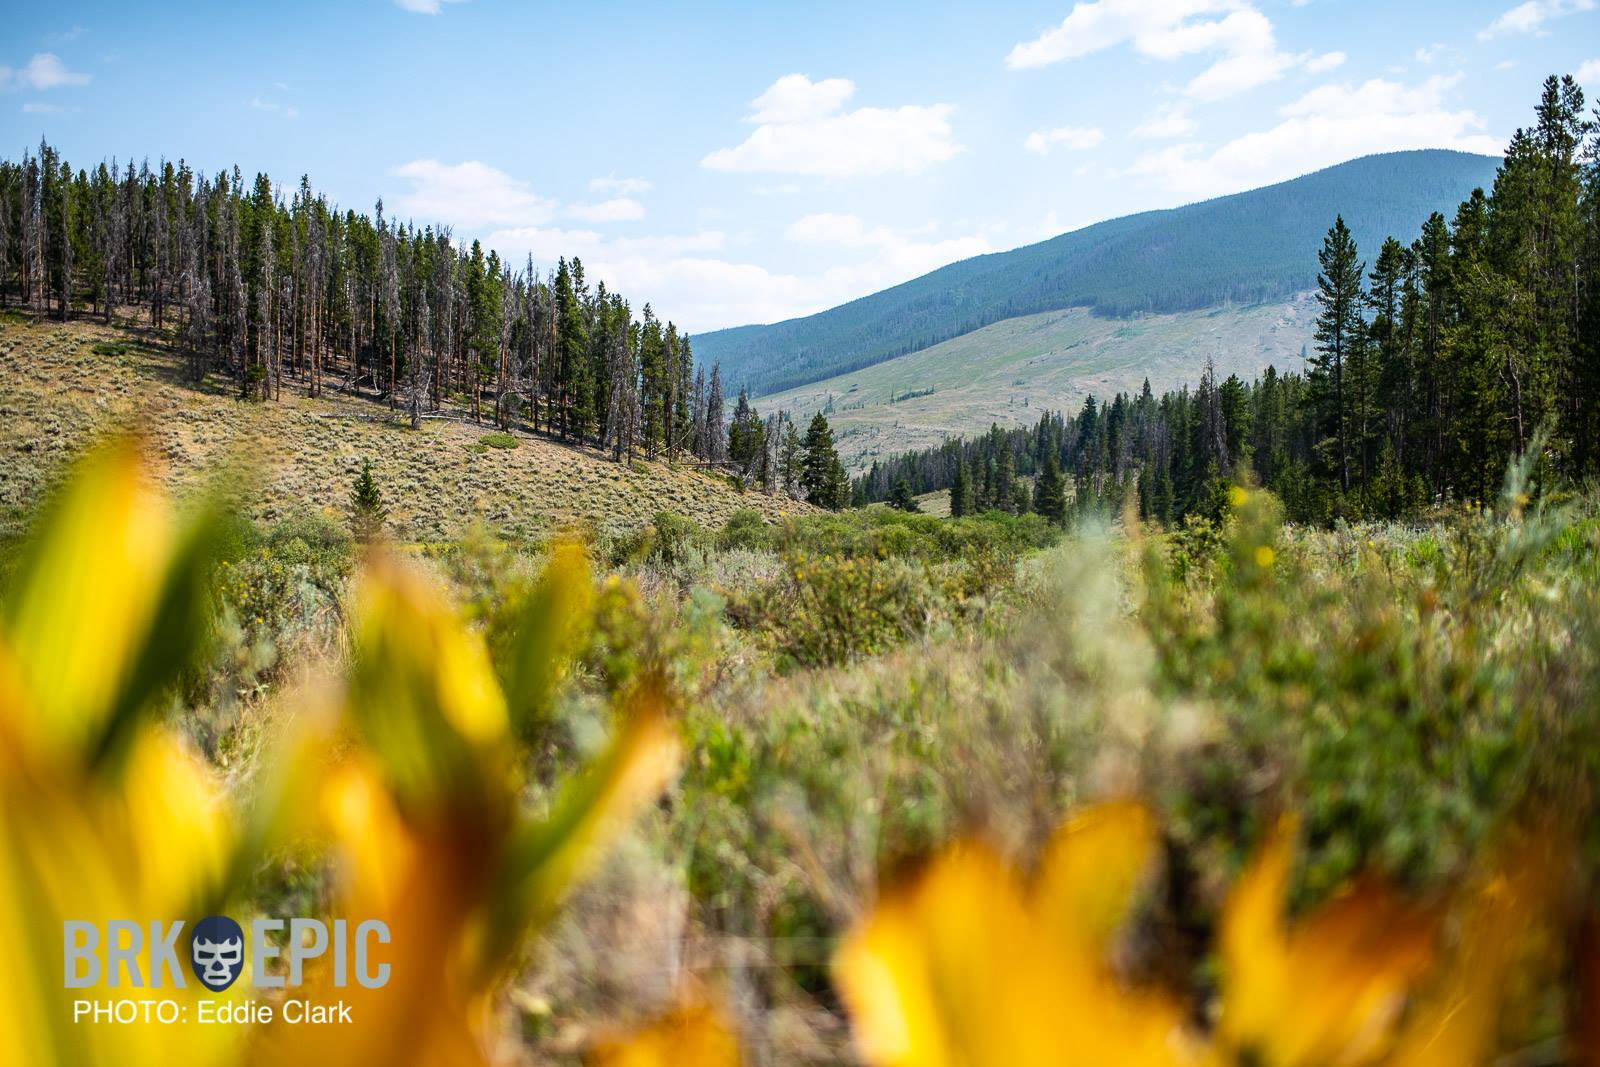 Breck Epic: Stage 4